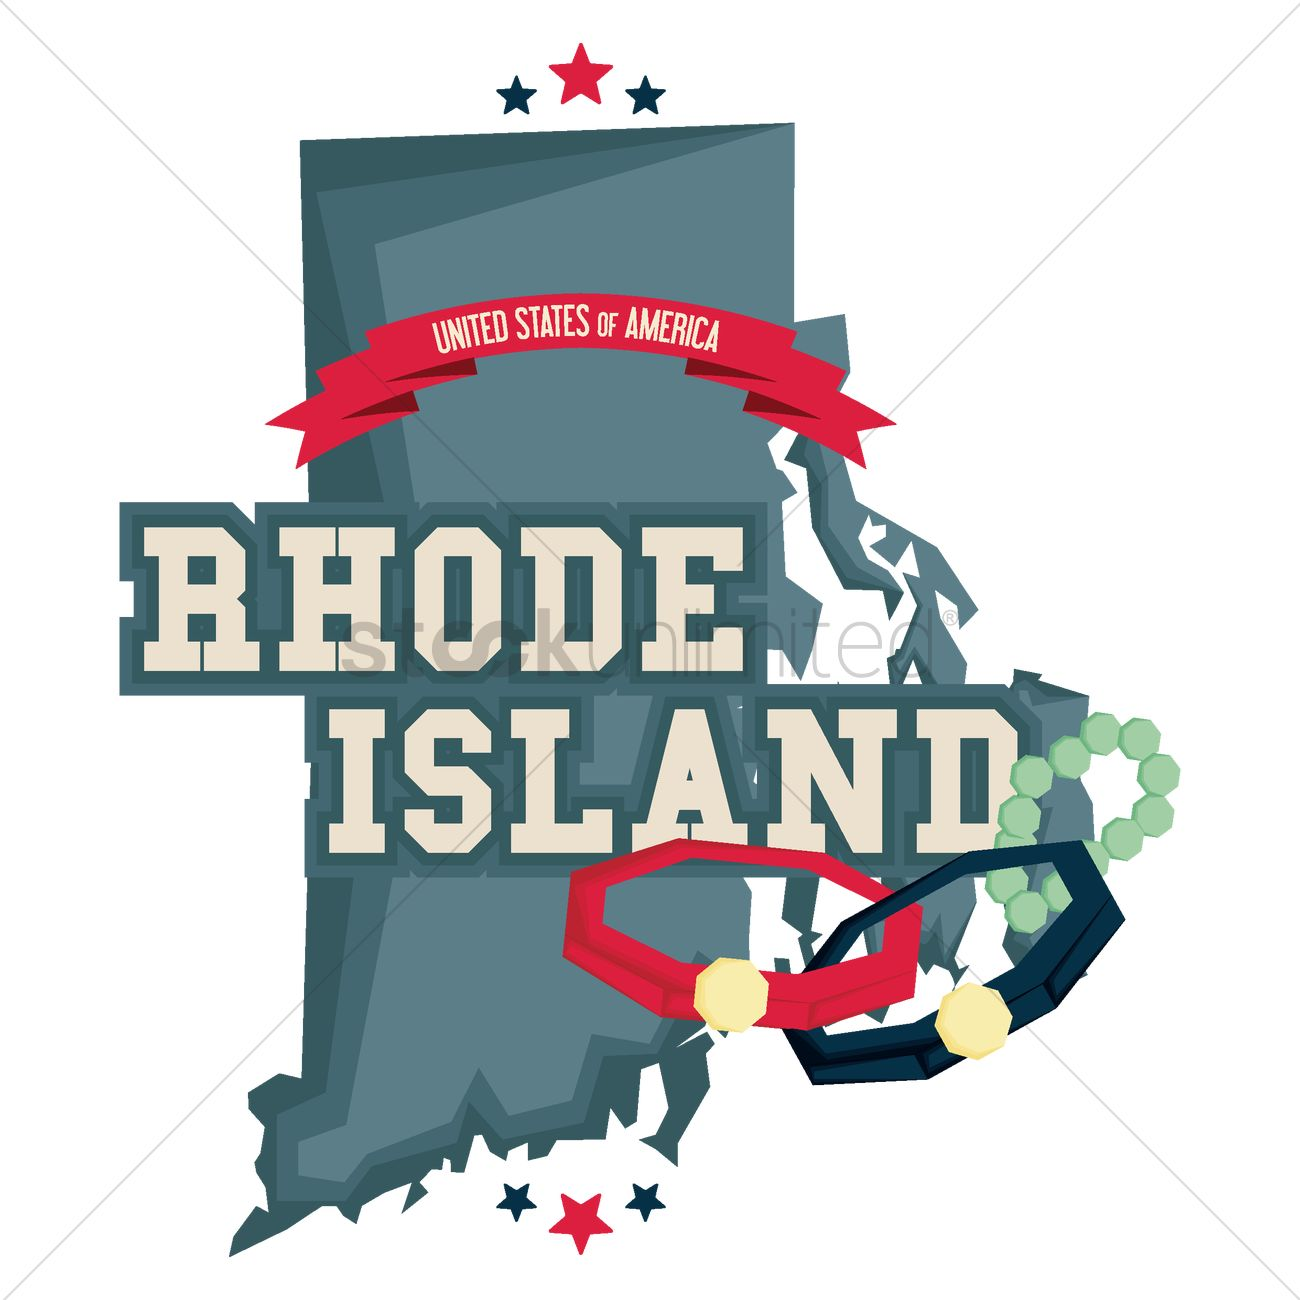 Rhode island map with jewelry manufacturing Vector Image - 1541192 on rhode island state animal, waving us flag clip art, rhode island people clip art, rhode island map graphic, projects clip art, rhode island flag, state of rhode island clip art, usa clip art, annual report clip art, featured attractions clip art, long island map clip art, conference clip art, block island clip art, rhode island map fun, rhode island products, forums clip art, native violet clip art, rhode island red clip art, rhode island usa map, resource guide clip art,